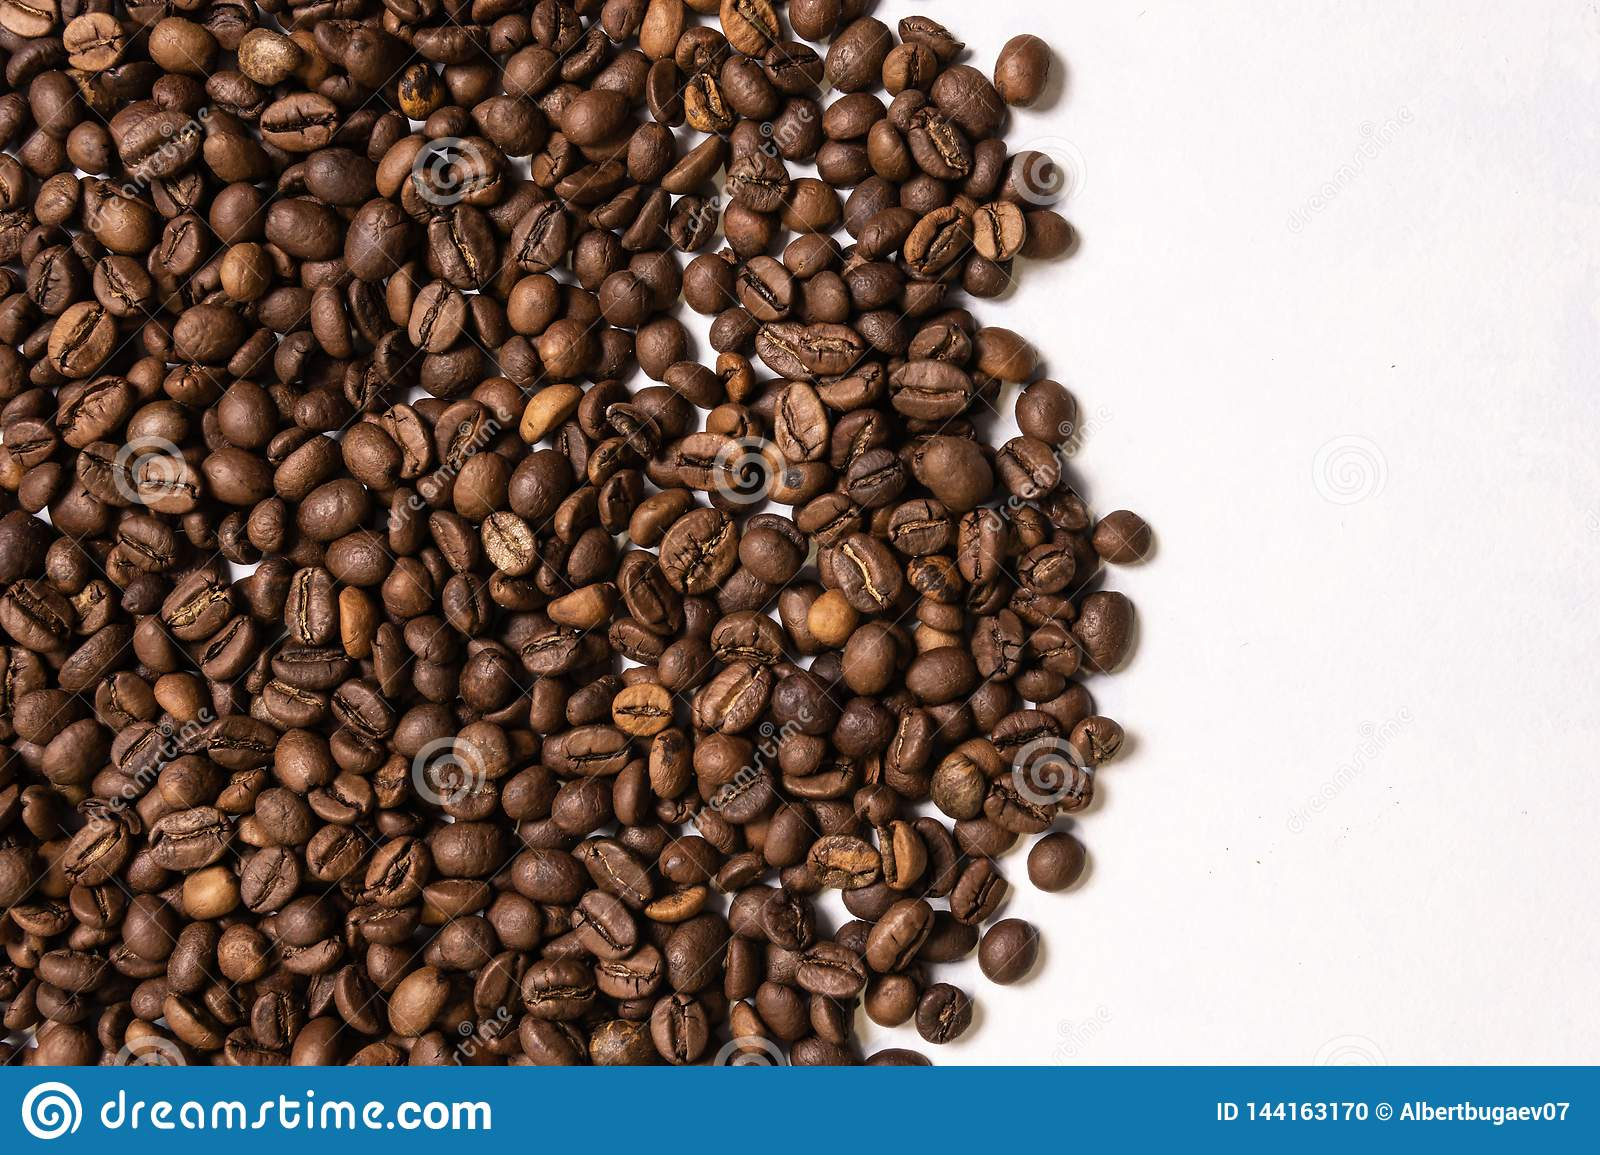 Roasted coffee beans in bulk on a light blue background. dark cofee roasted grain flavor aroma cafe, natural coffe shop background